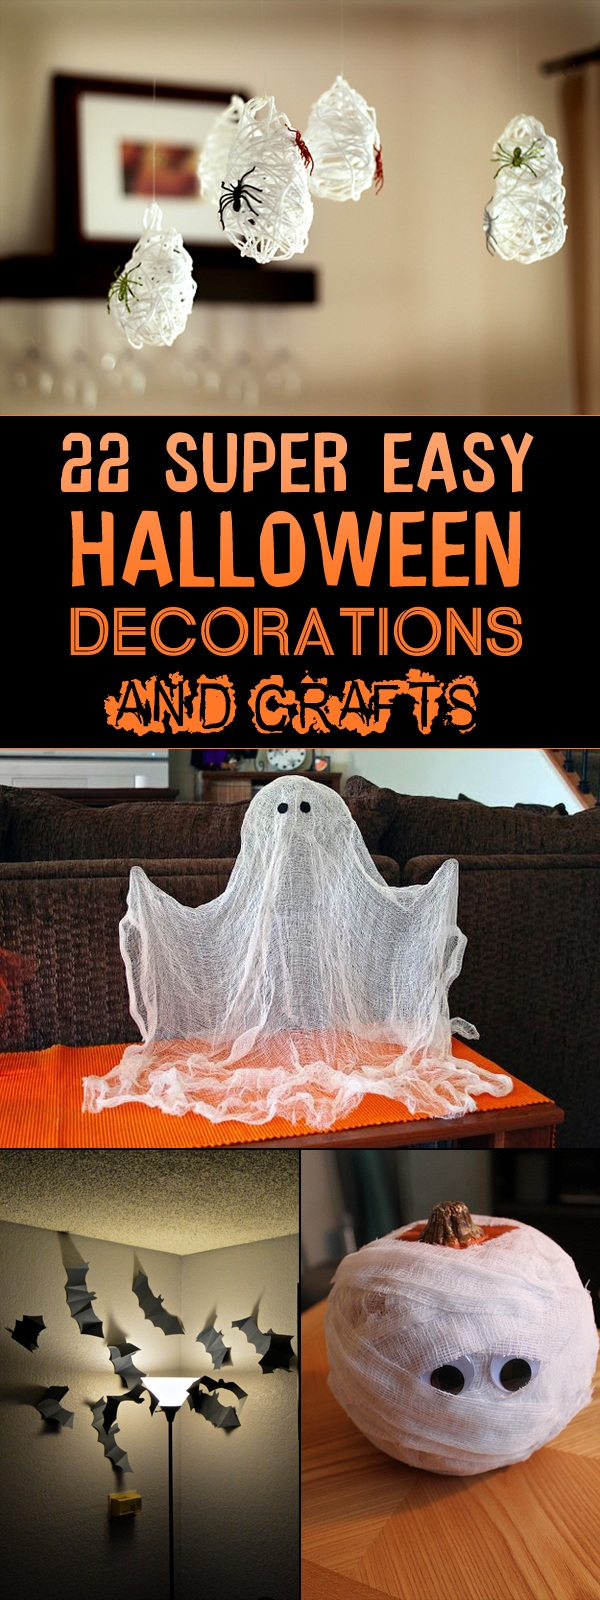 1 Super Easy Halloween Decorations and Crafts You Can Make Yourself